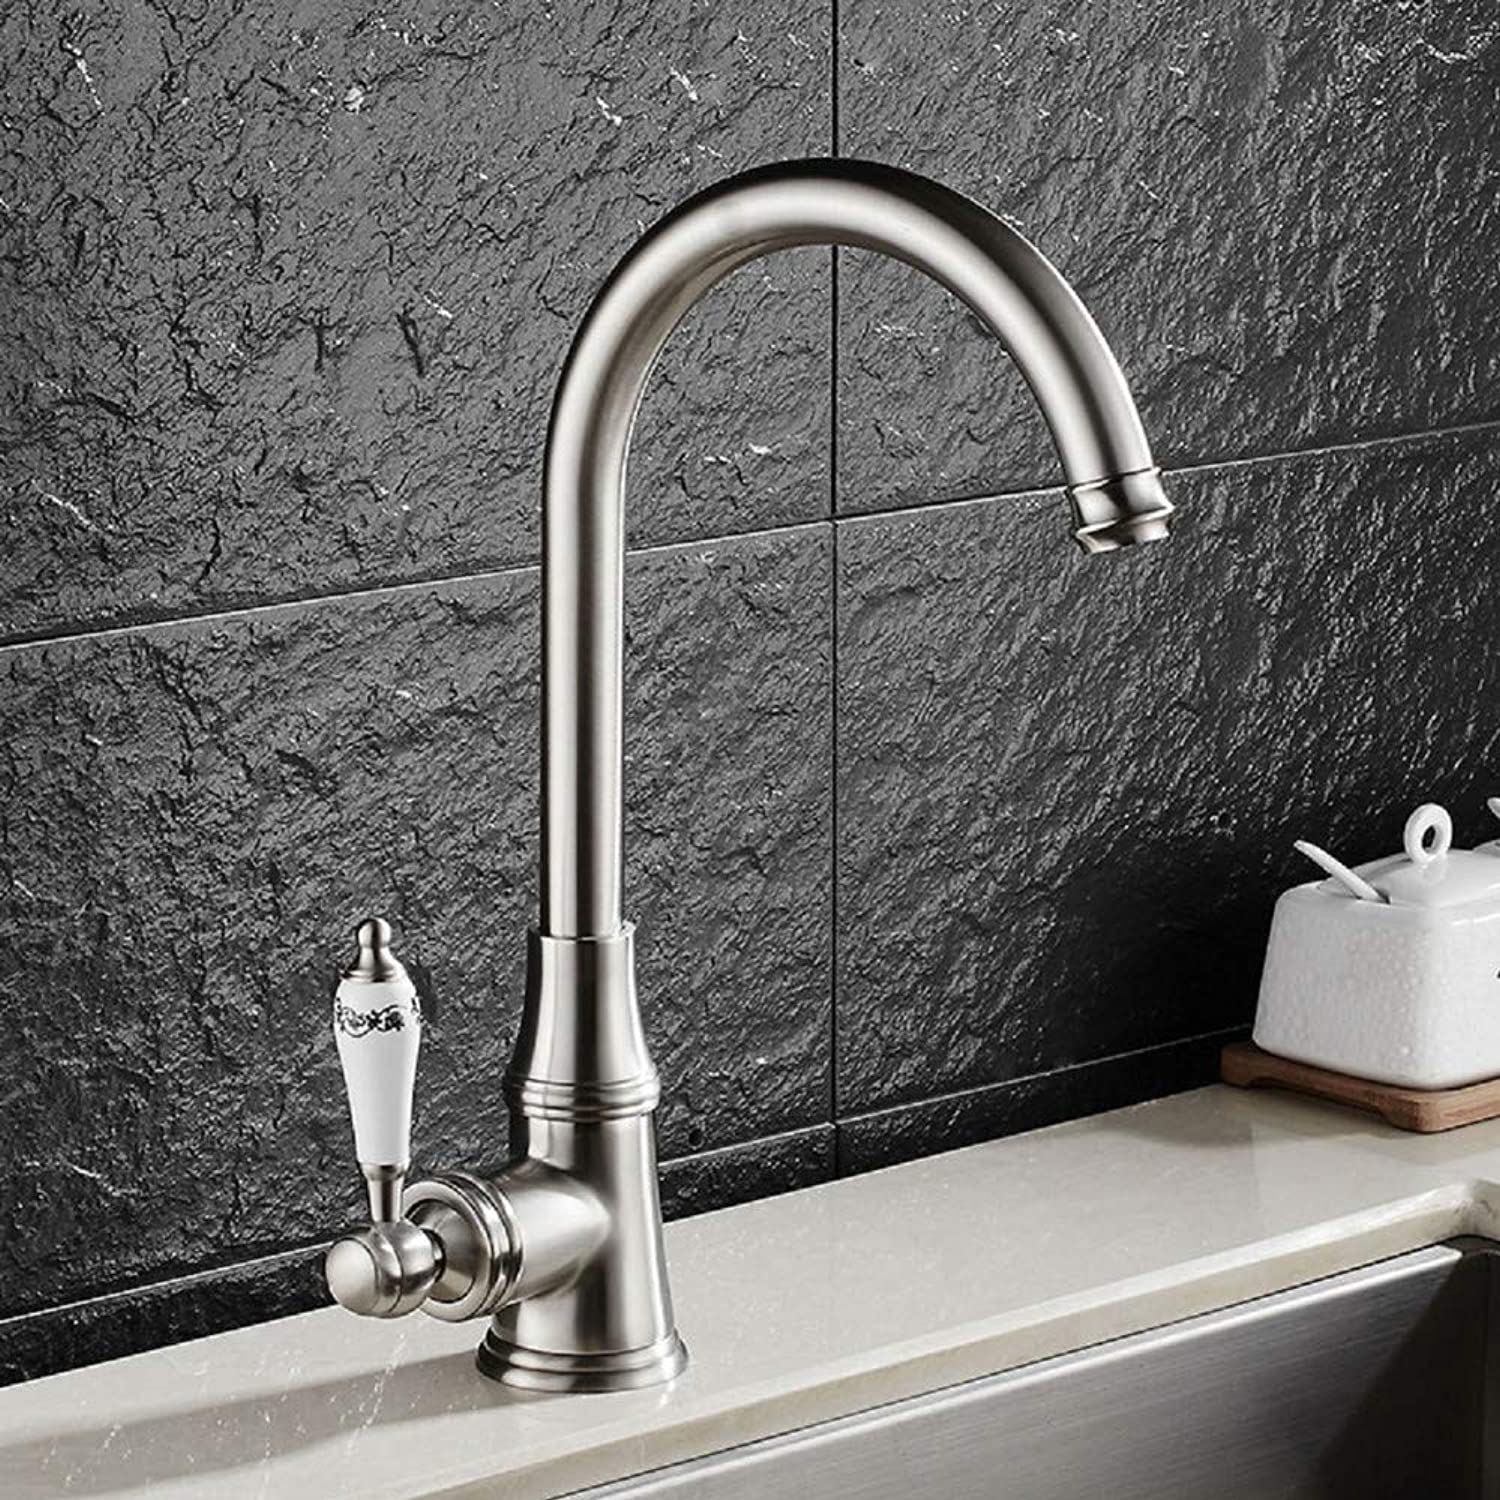 Kitchen Tap Faucet 360 ° redatable Kitchen Mixer Sink Mixer Single Lever Mixer Tap Kitchen Sink Faucet with Ceramic Handle Made of Brass Kitchen Taps Kitchen Sink Mixer Taps Basin Tap